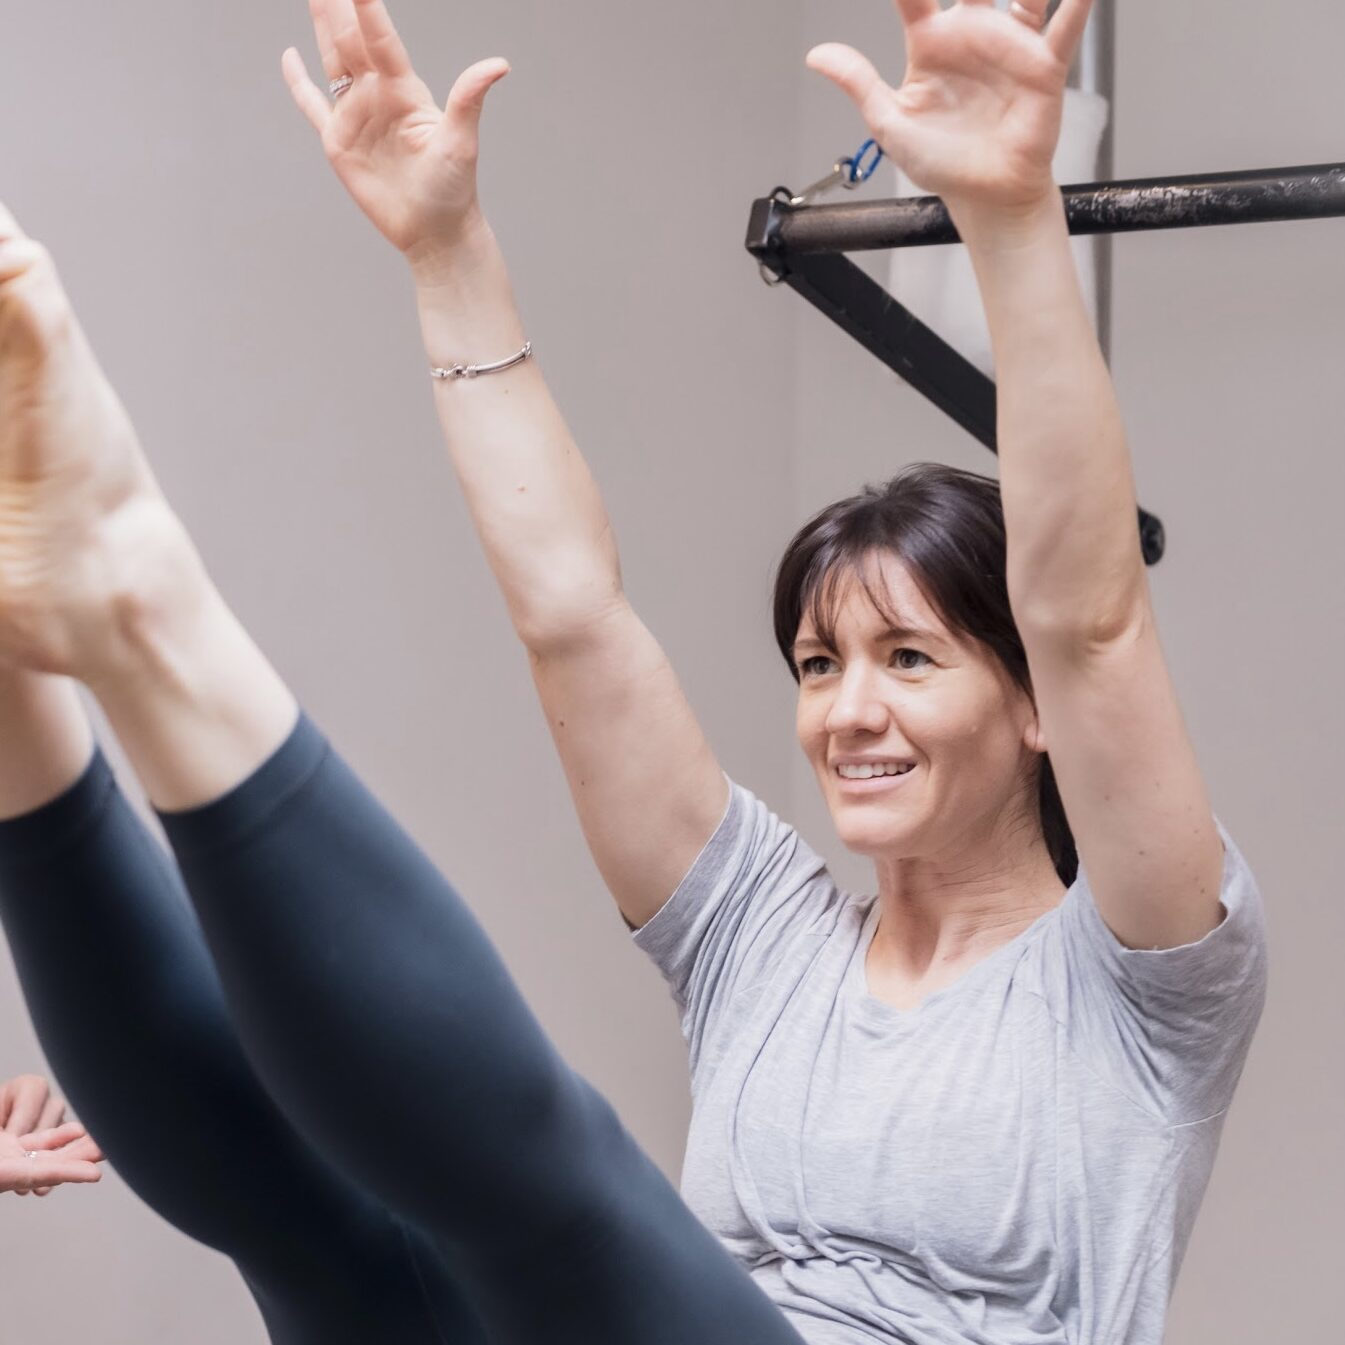 A testimonial photo of Leah working out in a Pilates studio